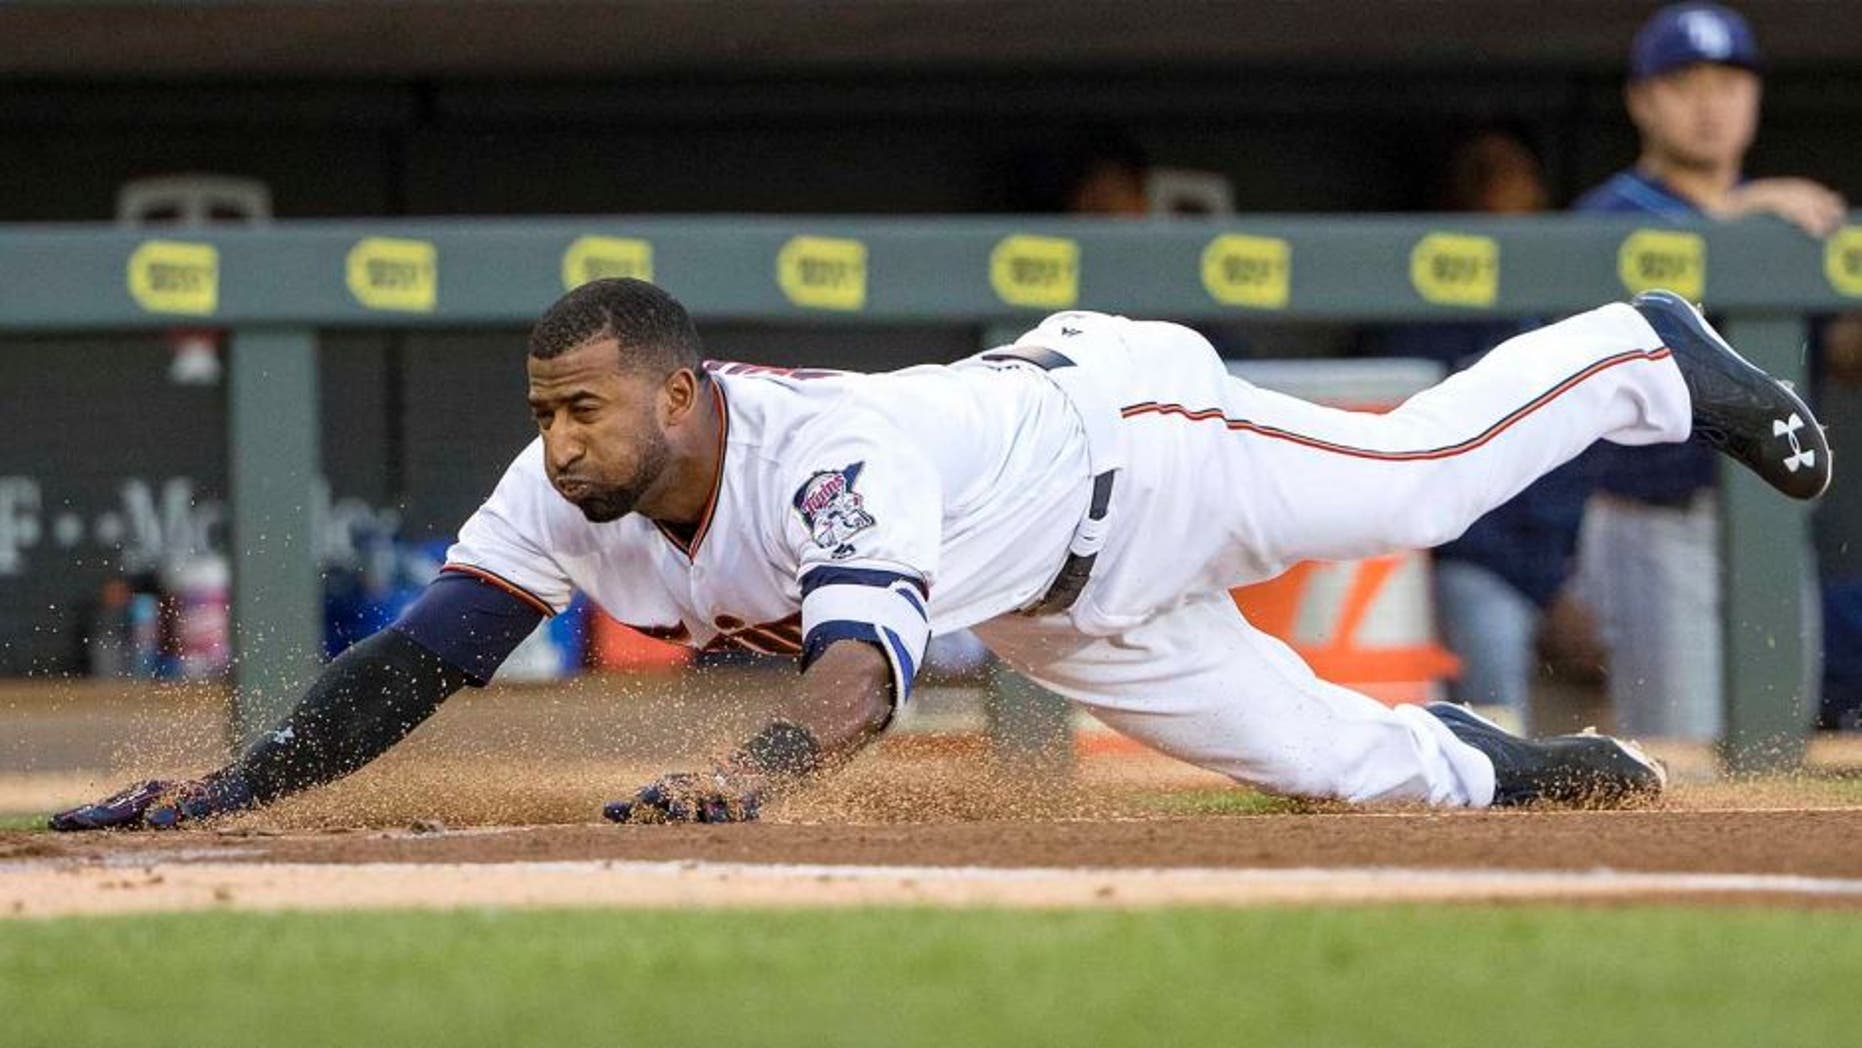 Jun 2, 2016; Minneapolis, MN, USA; Minnesota Twins shortstop Eduardo Nunez (9) slides into home plate safely for an inside the park home run in the first inning against the Tampa Bay Rays at Target Field. Mandatory Credit: Jesse Johnson-USA TODAY Sports